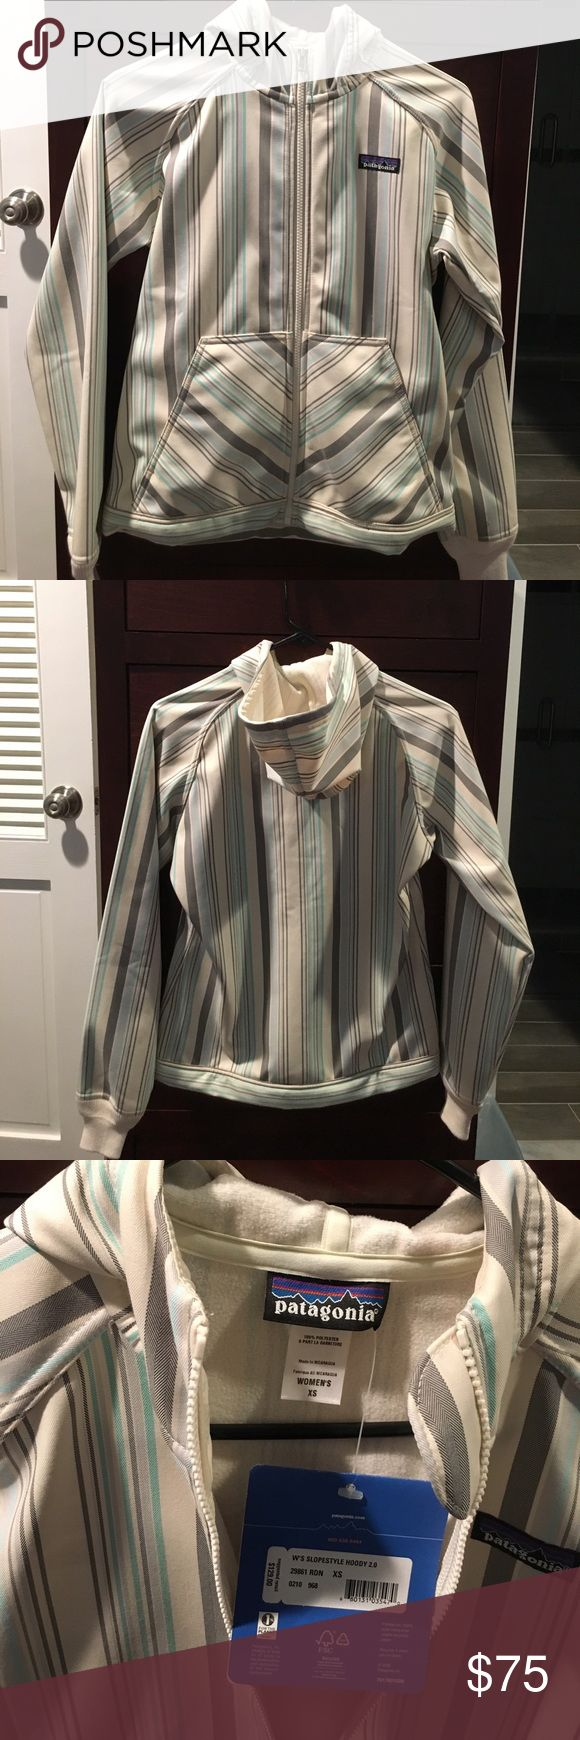 Patagonia Women's XS Slopestyle Hoody 2.0 BNWT XS Patagonia jacket- creme colored with gray and green stripes- Retail $129 Patagonia Jackets & Coats